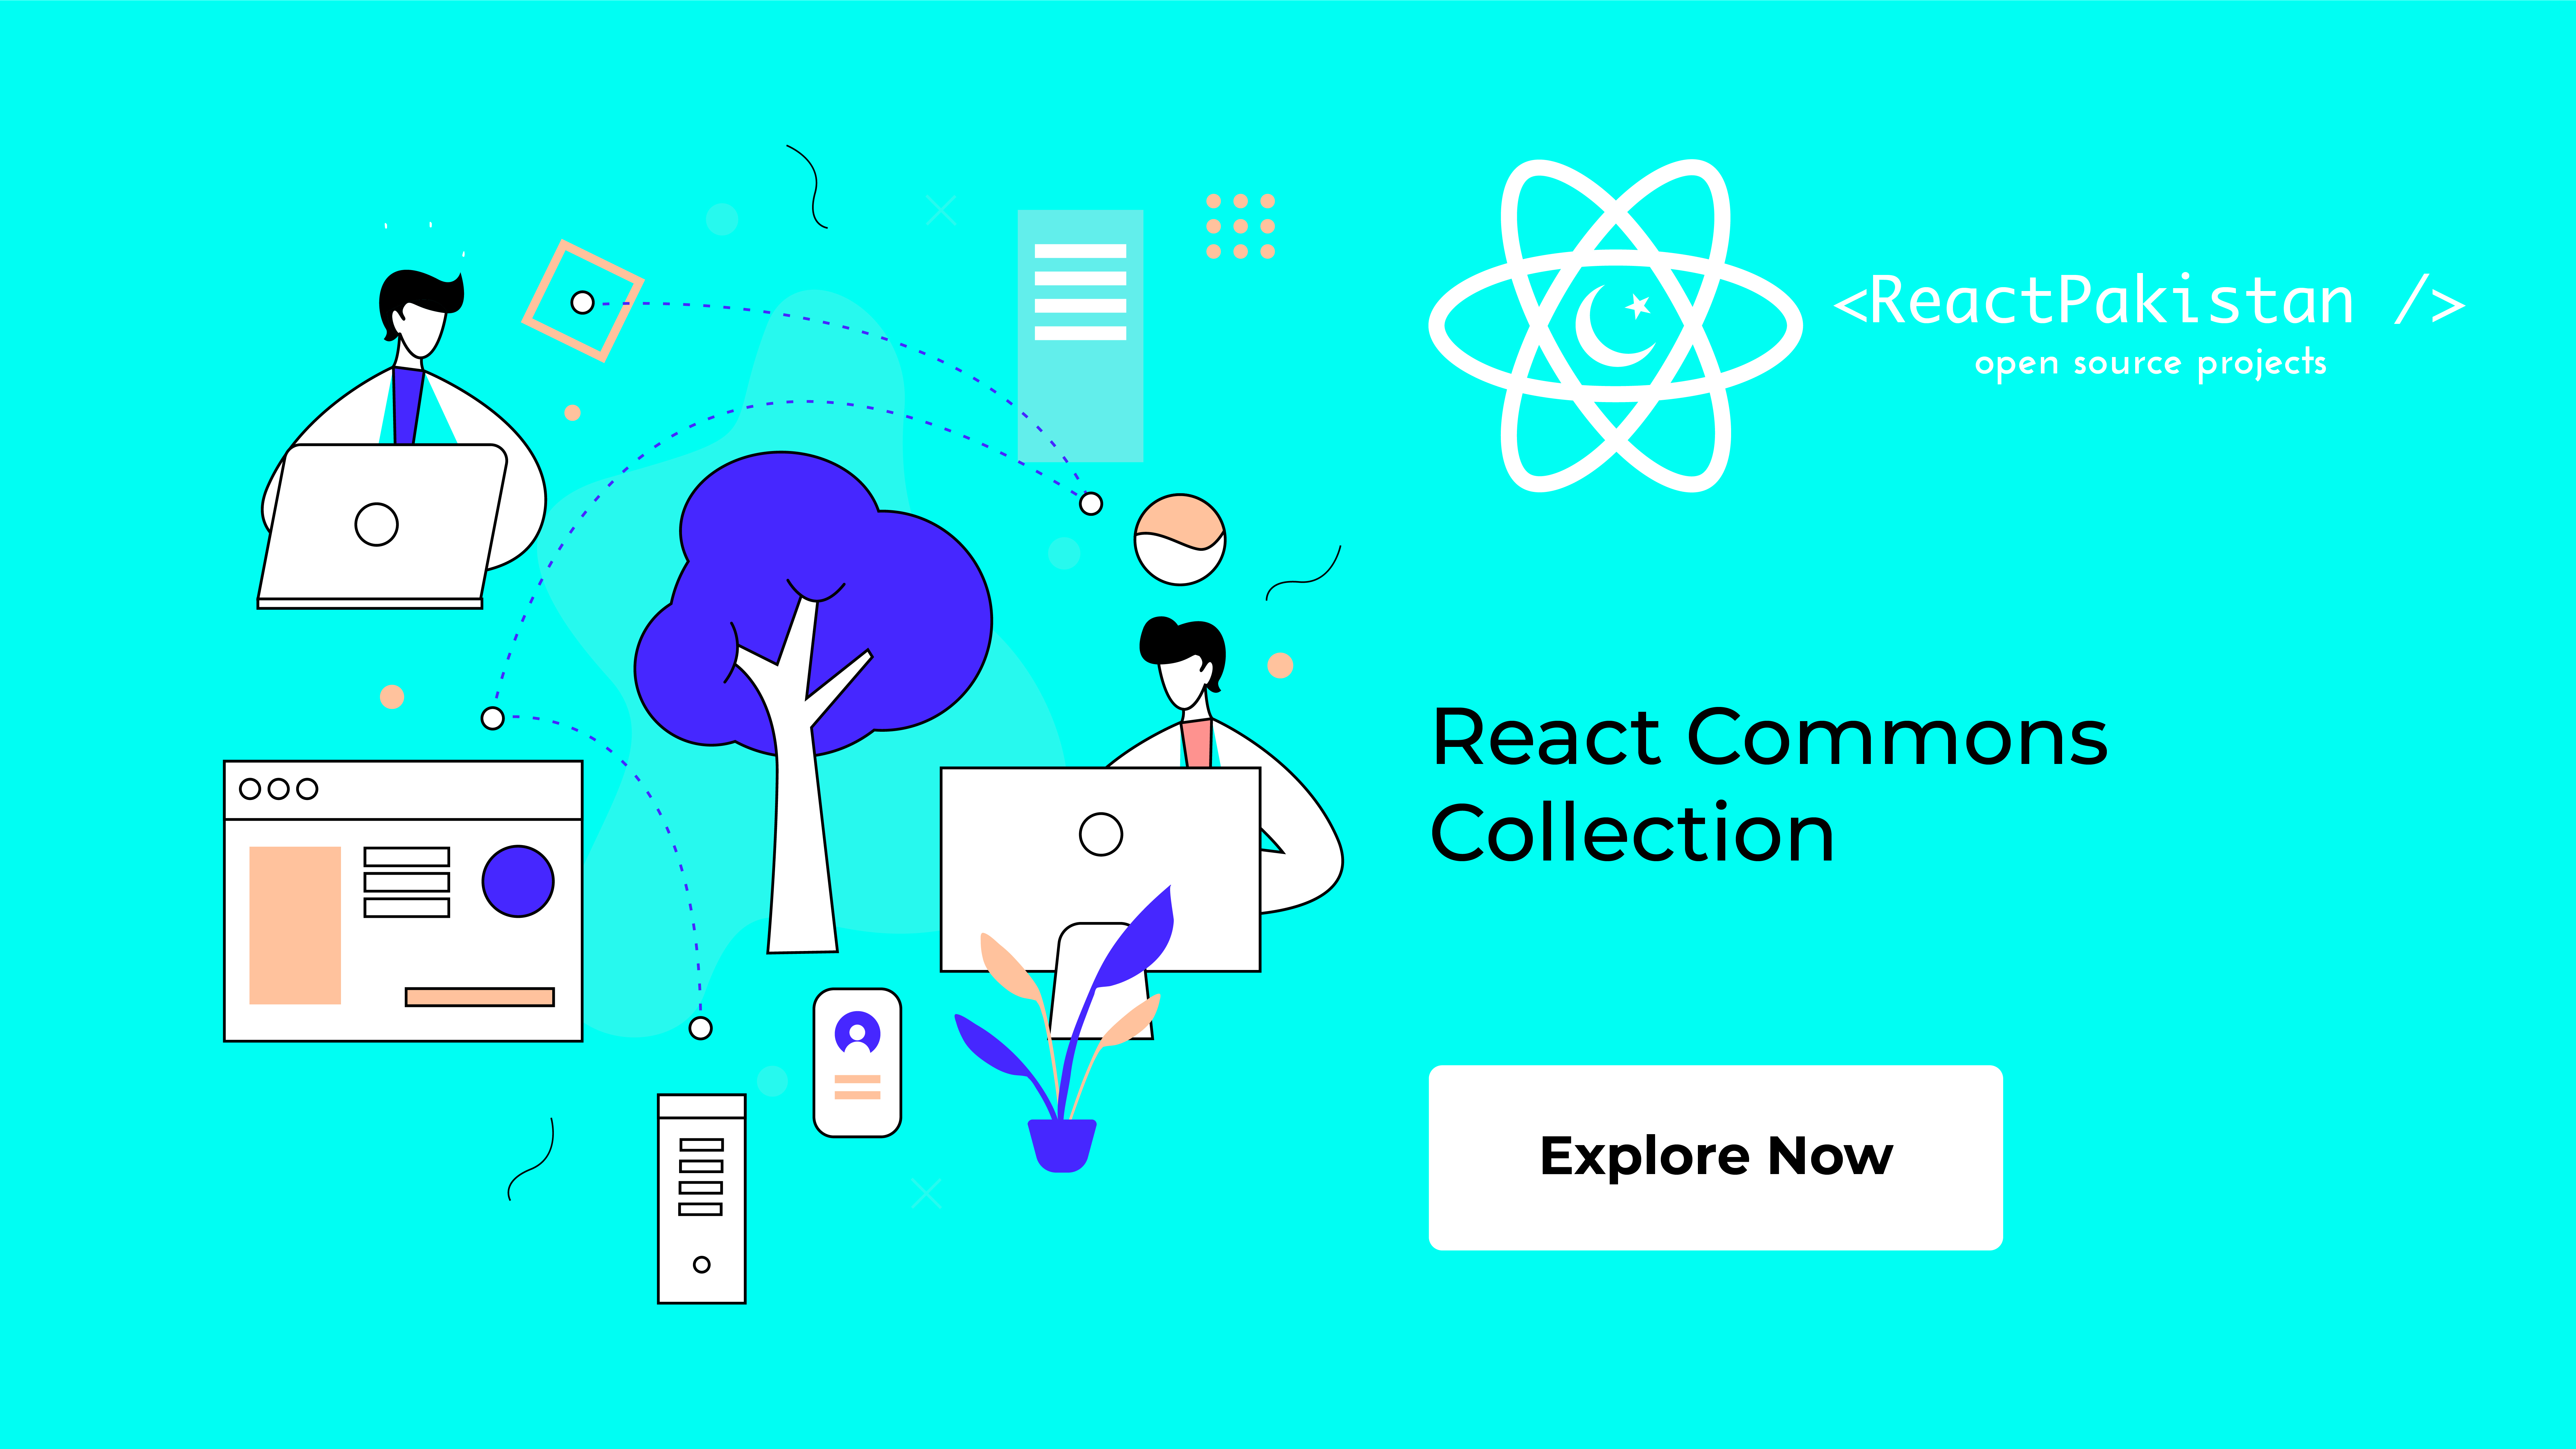 React Pakistan - React Commons Collection